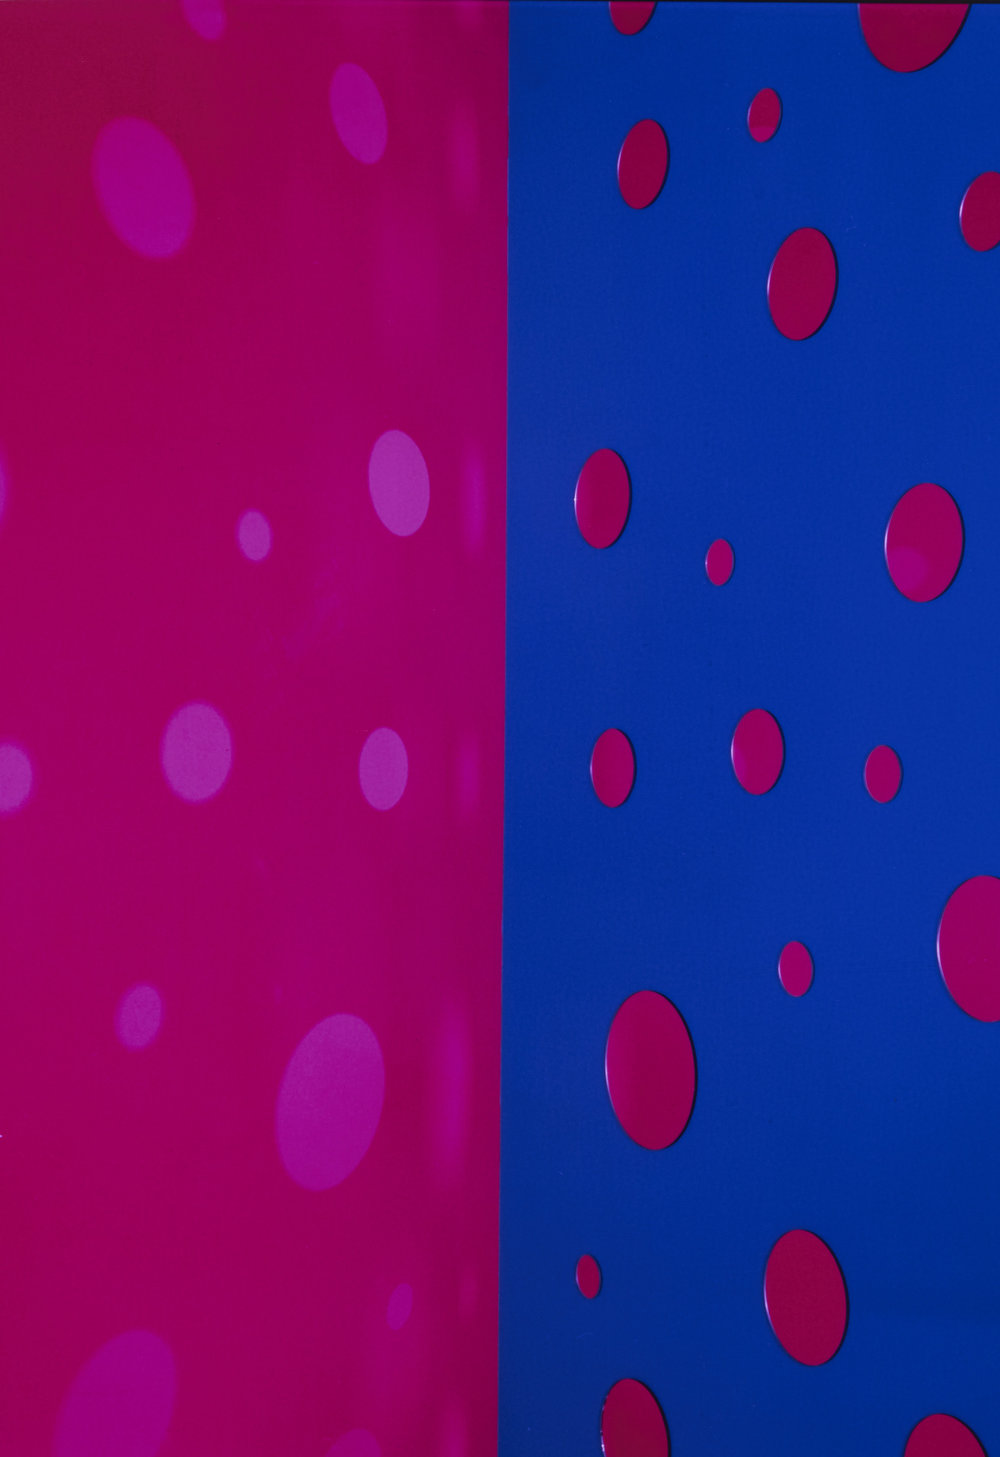 JACKY REDGATE   Light Throw (Mirrors) Fold - Pink and Violet  2019 Chromogenic photograph handprinted 185 x 127 cm